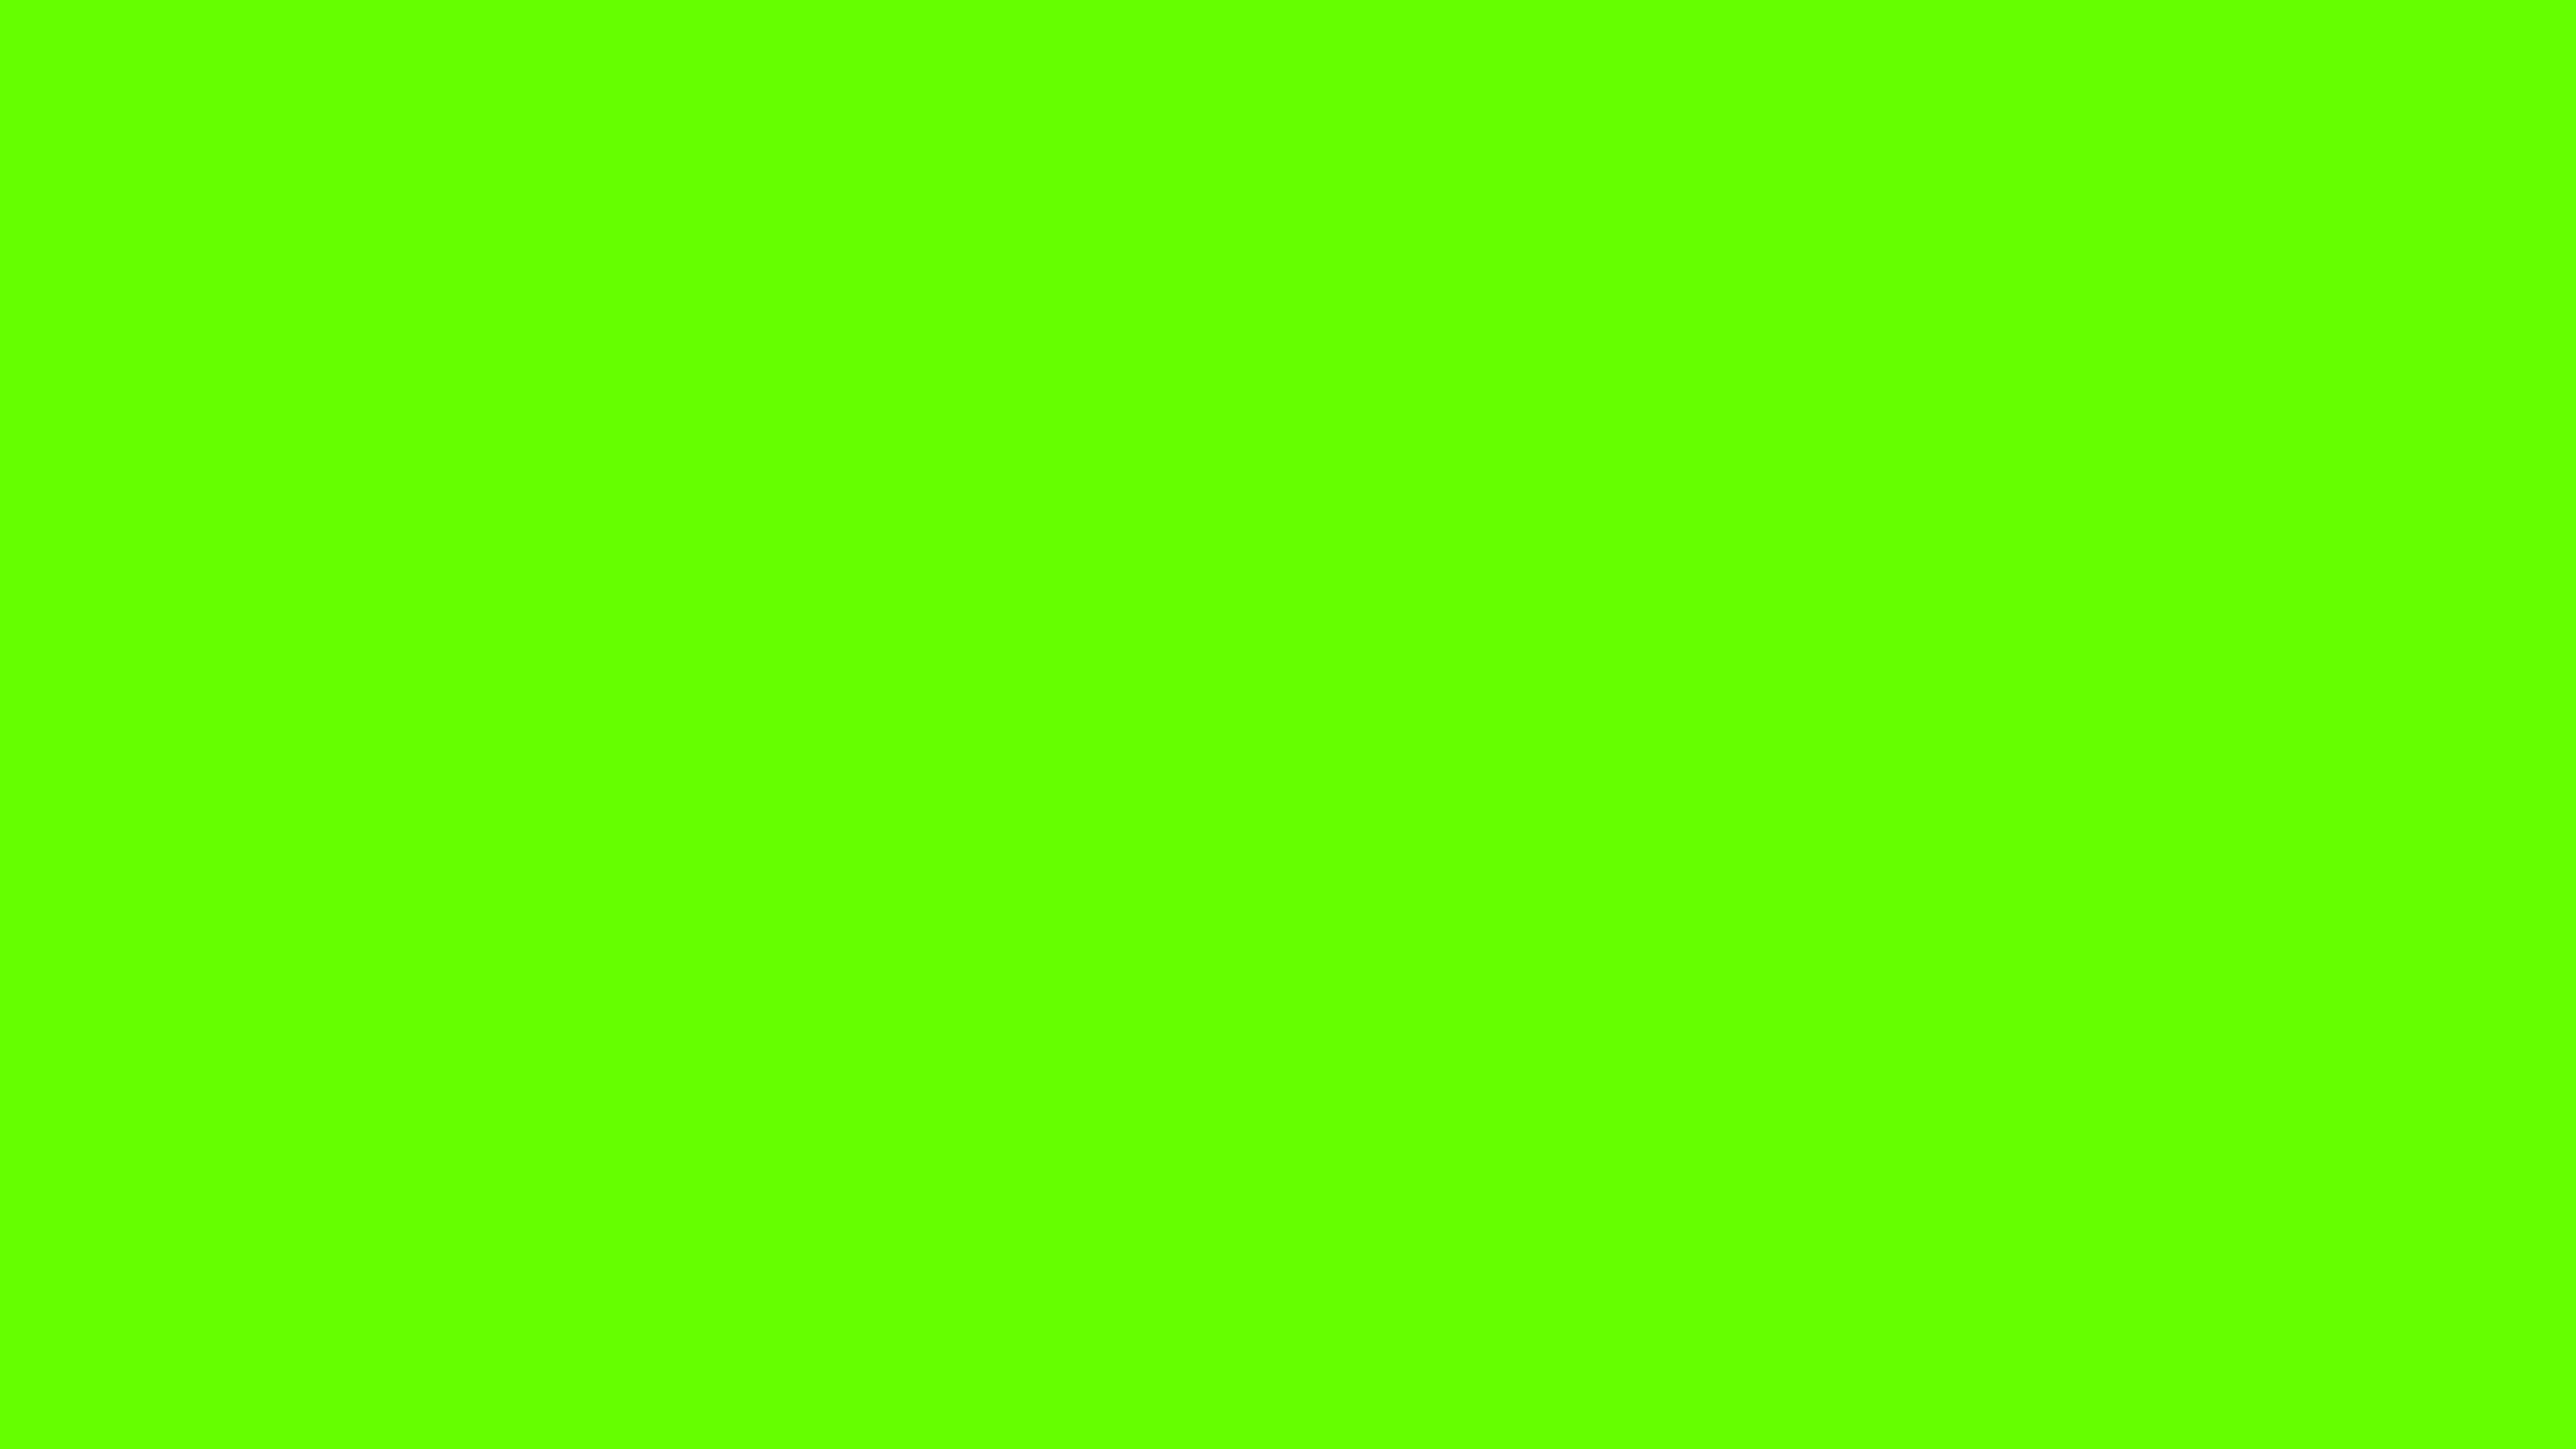 3840x2160 Bright Green Solid Color Background